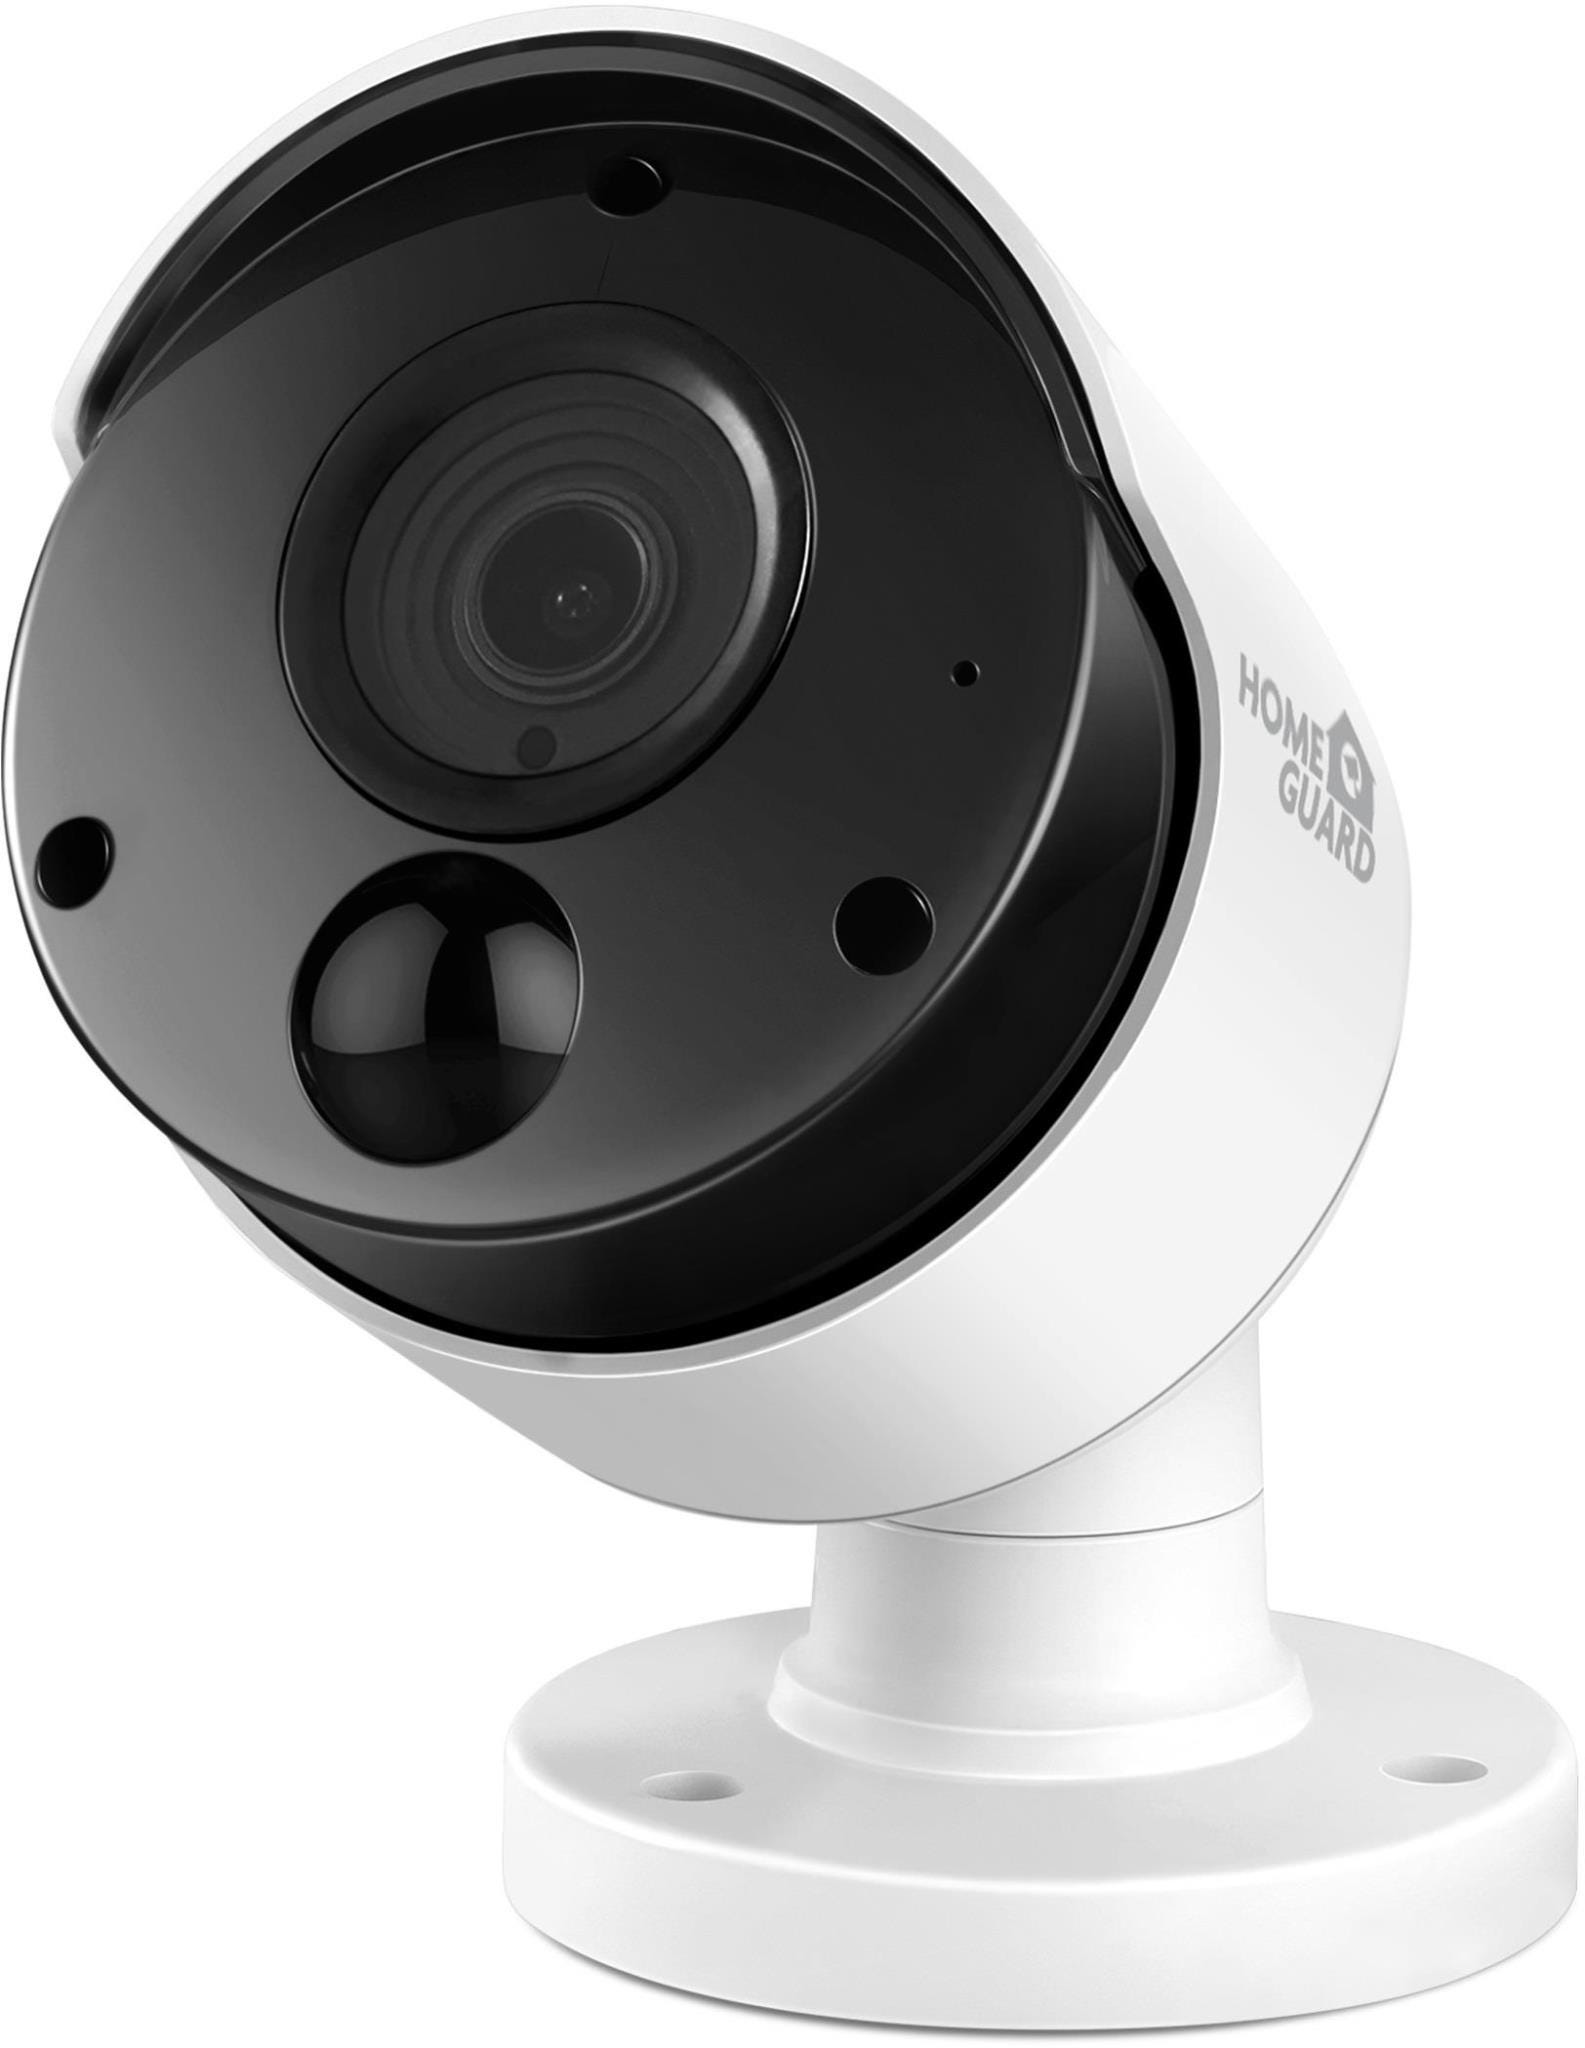 HomeGuard HGPRO-838 Indoor / Outdoor Wired Full HD Night-Vision Security Camera - White